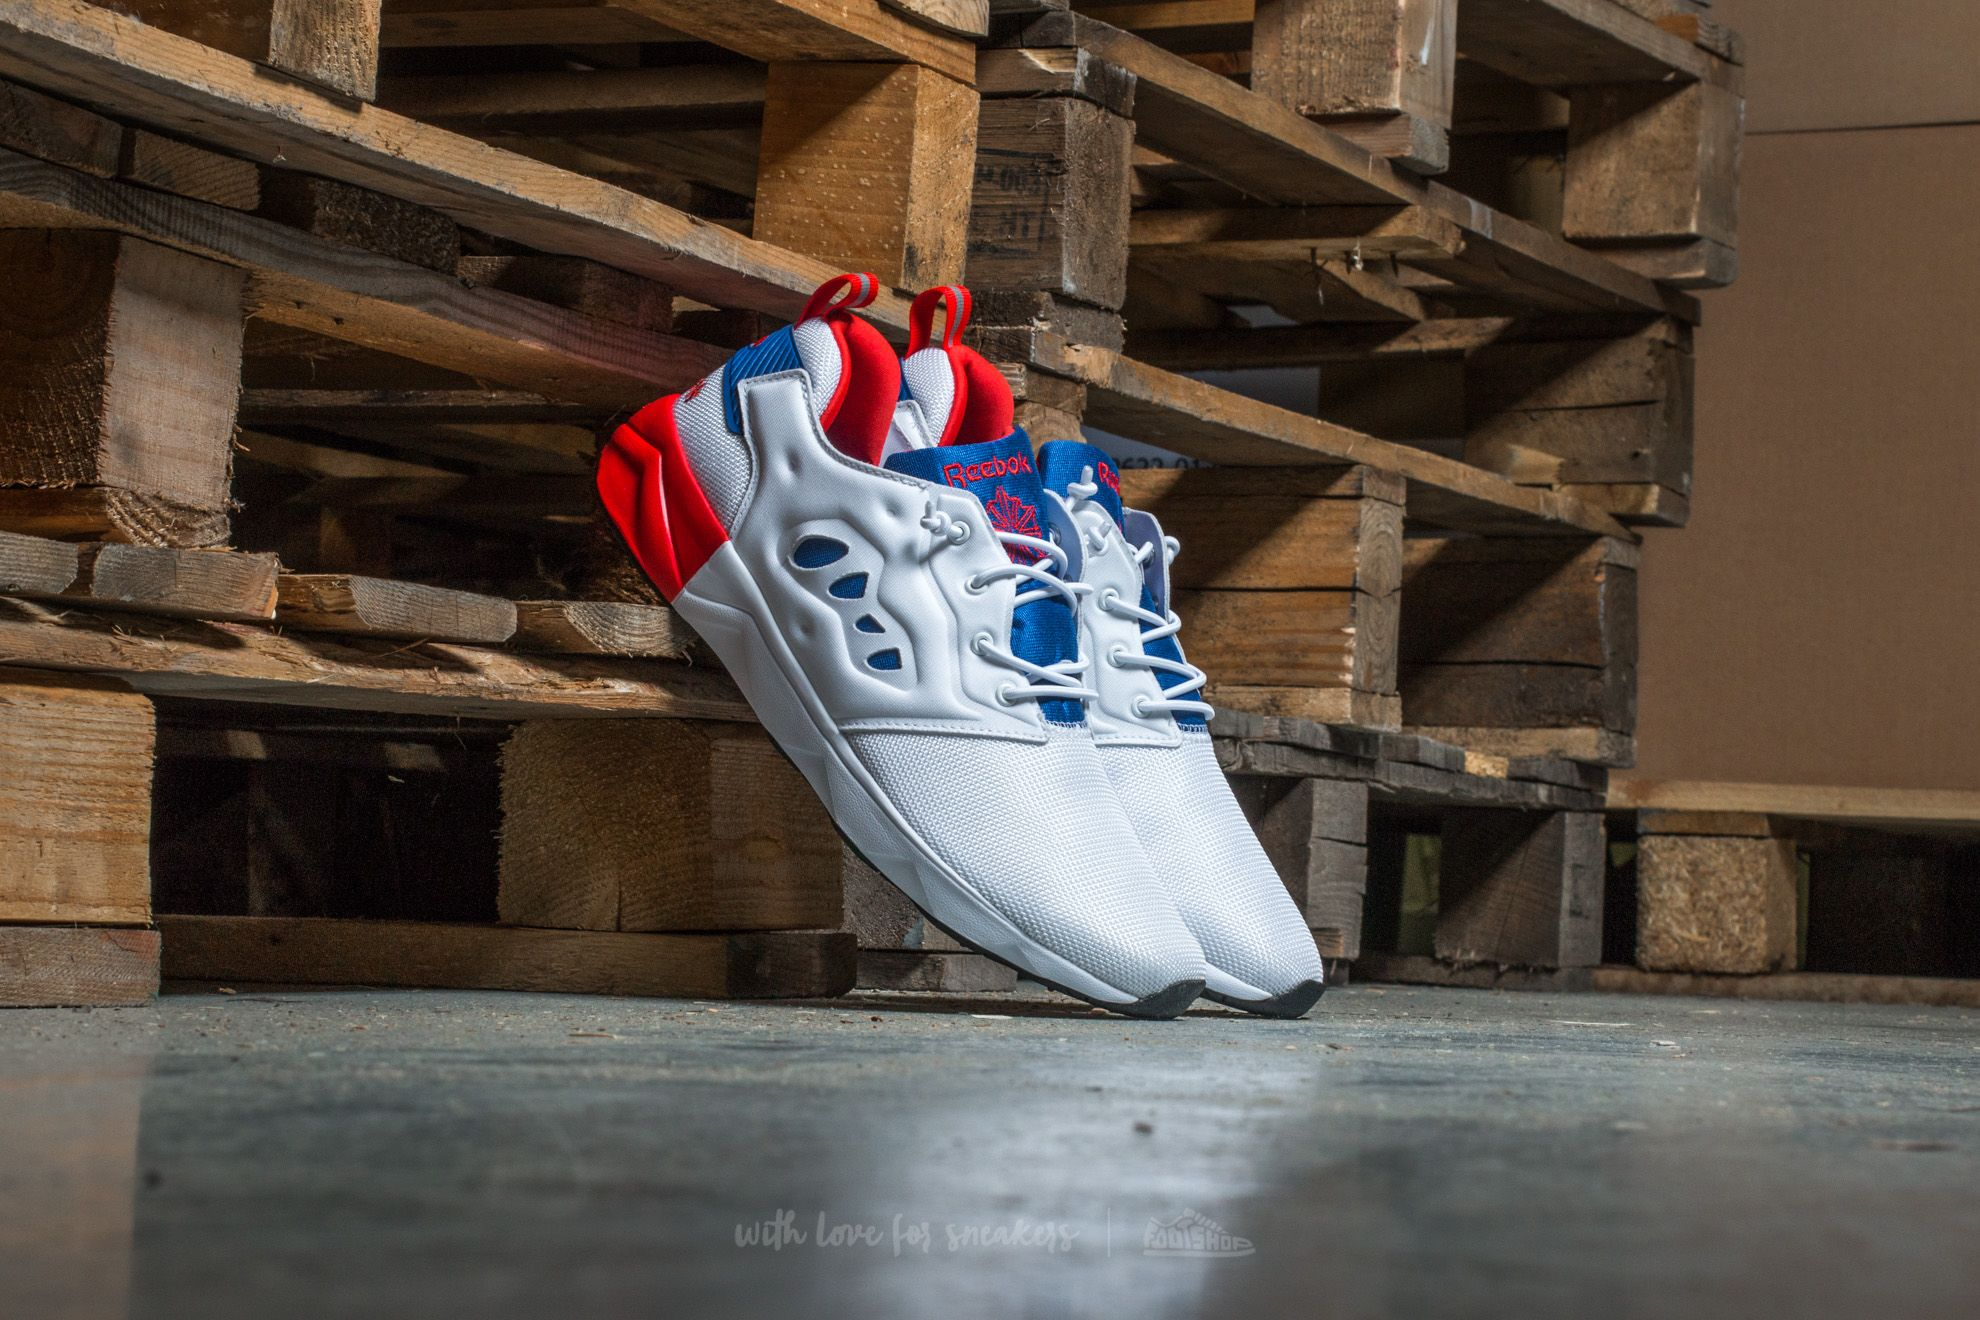 ecb703e421a Reebok Furylite II White  Royal  Riot Red